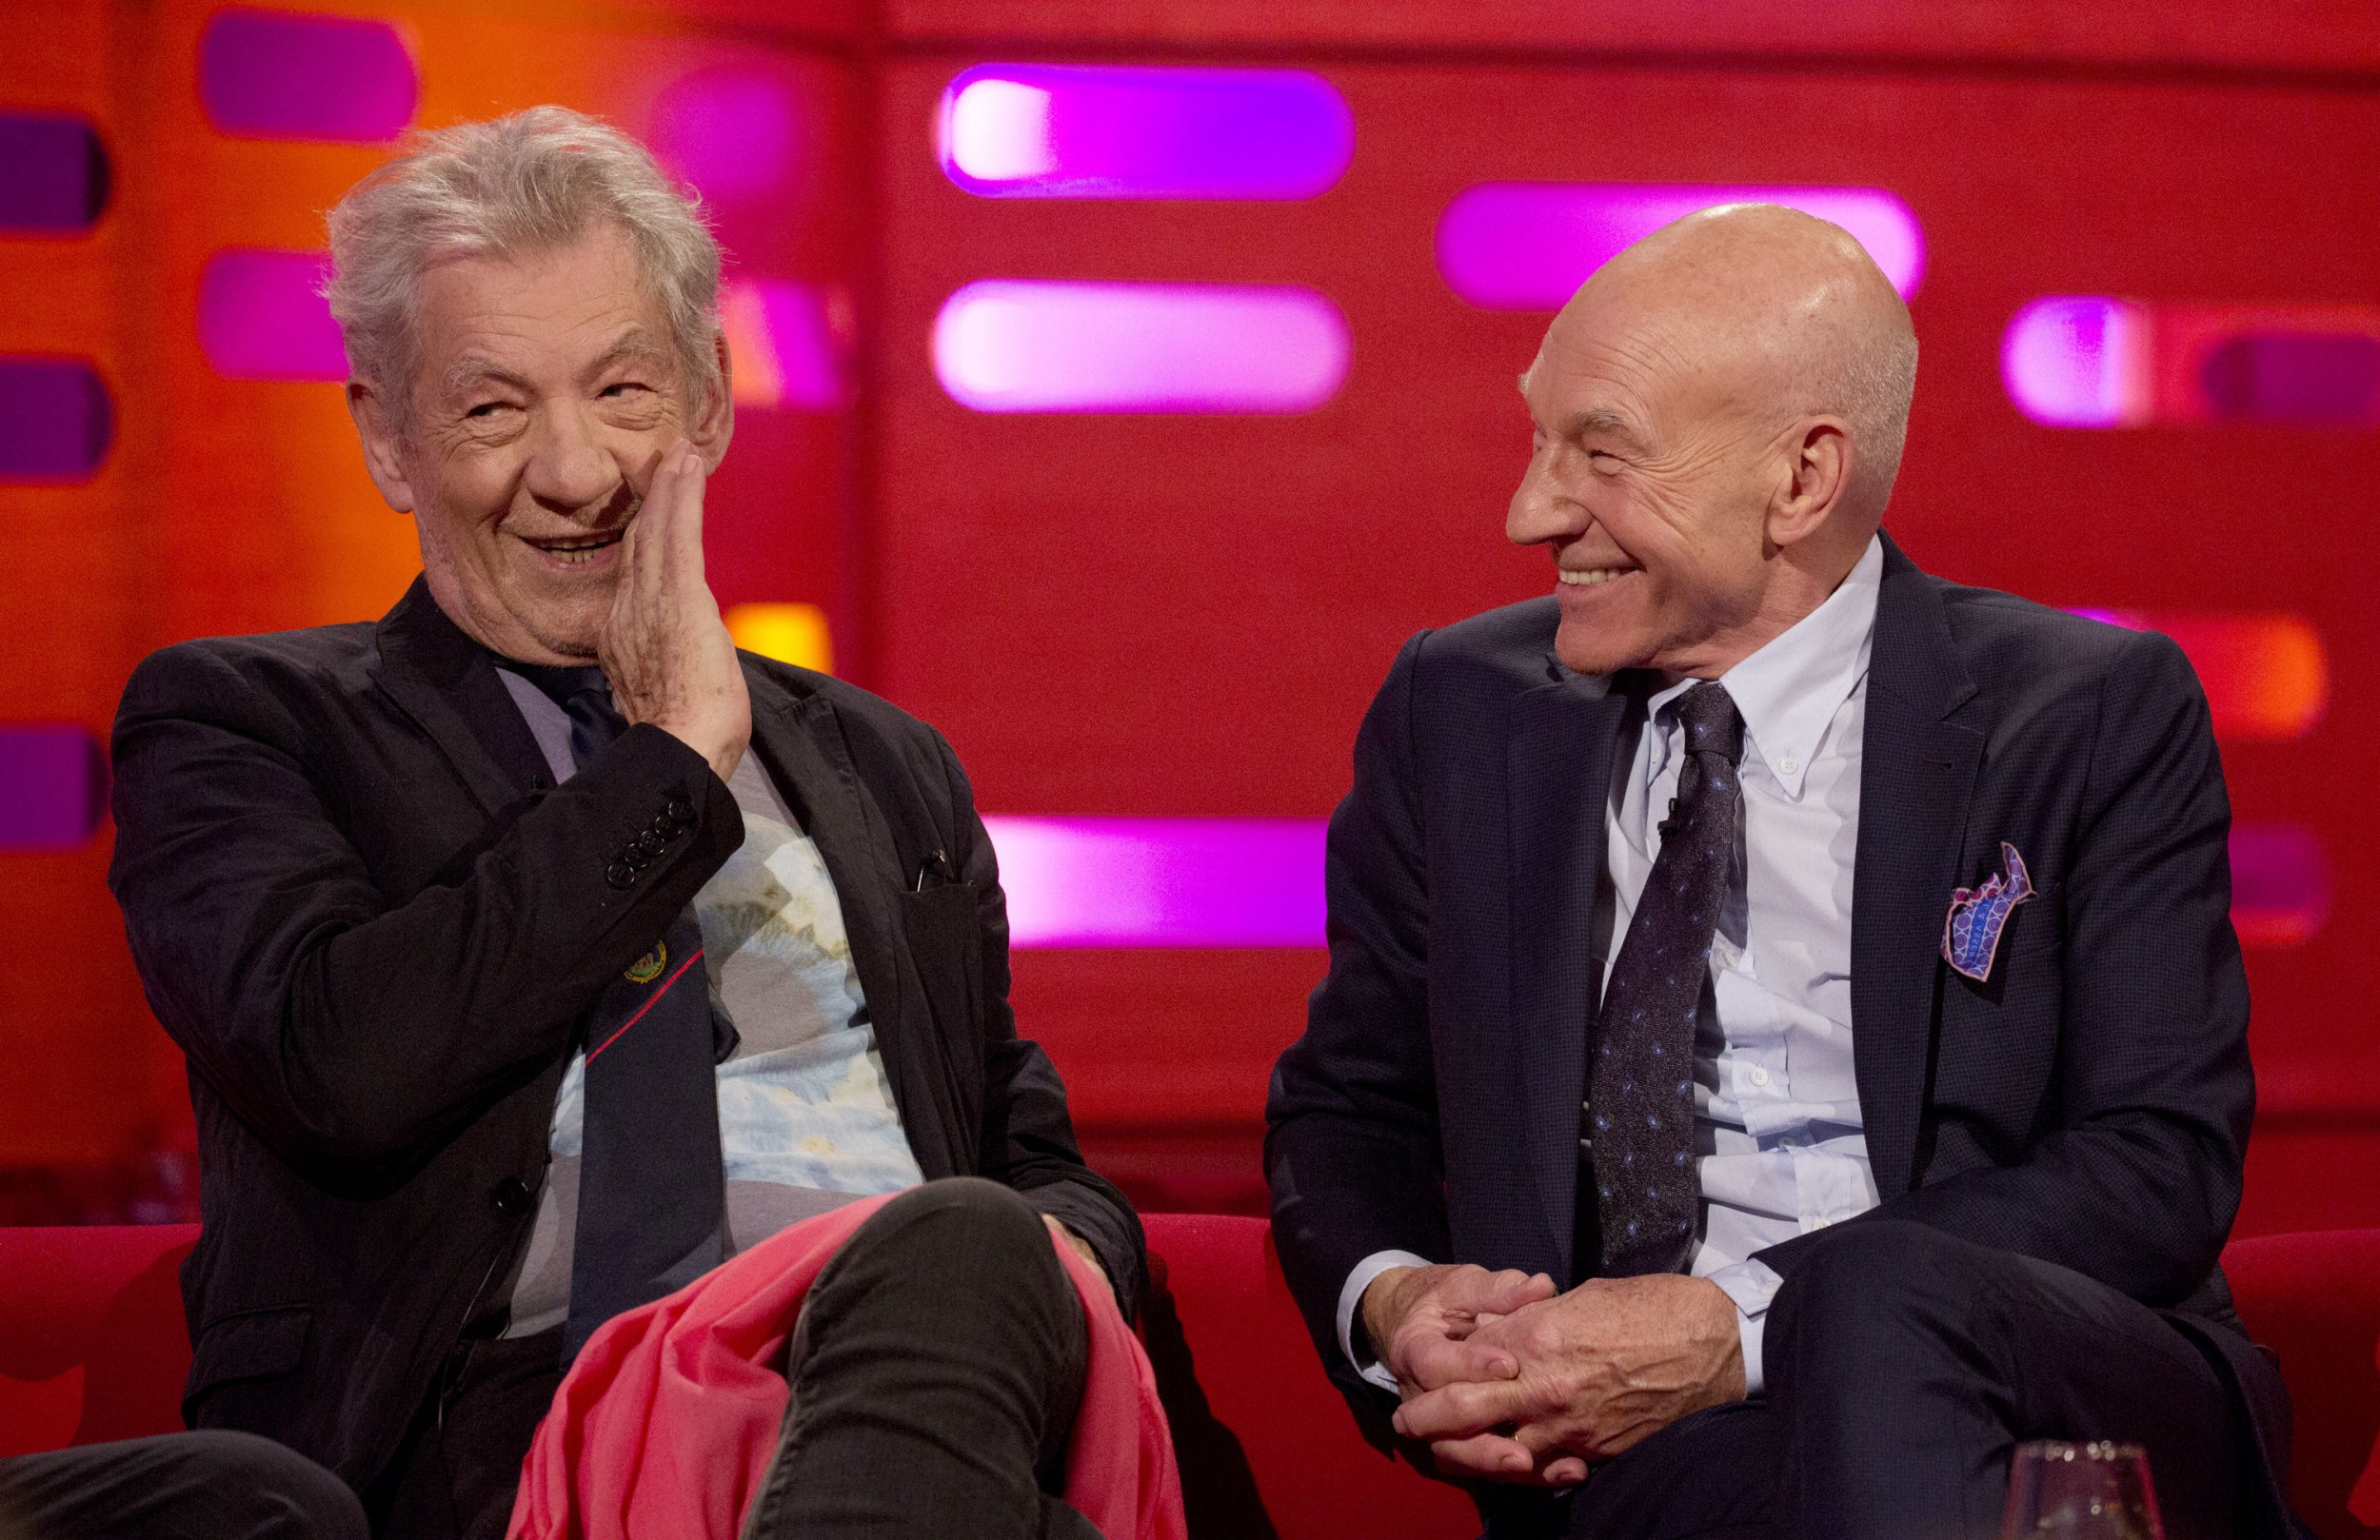 Sir Ian McKellen reckons it's time Sir Patrick Stewart's X-Men character was killed off